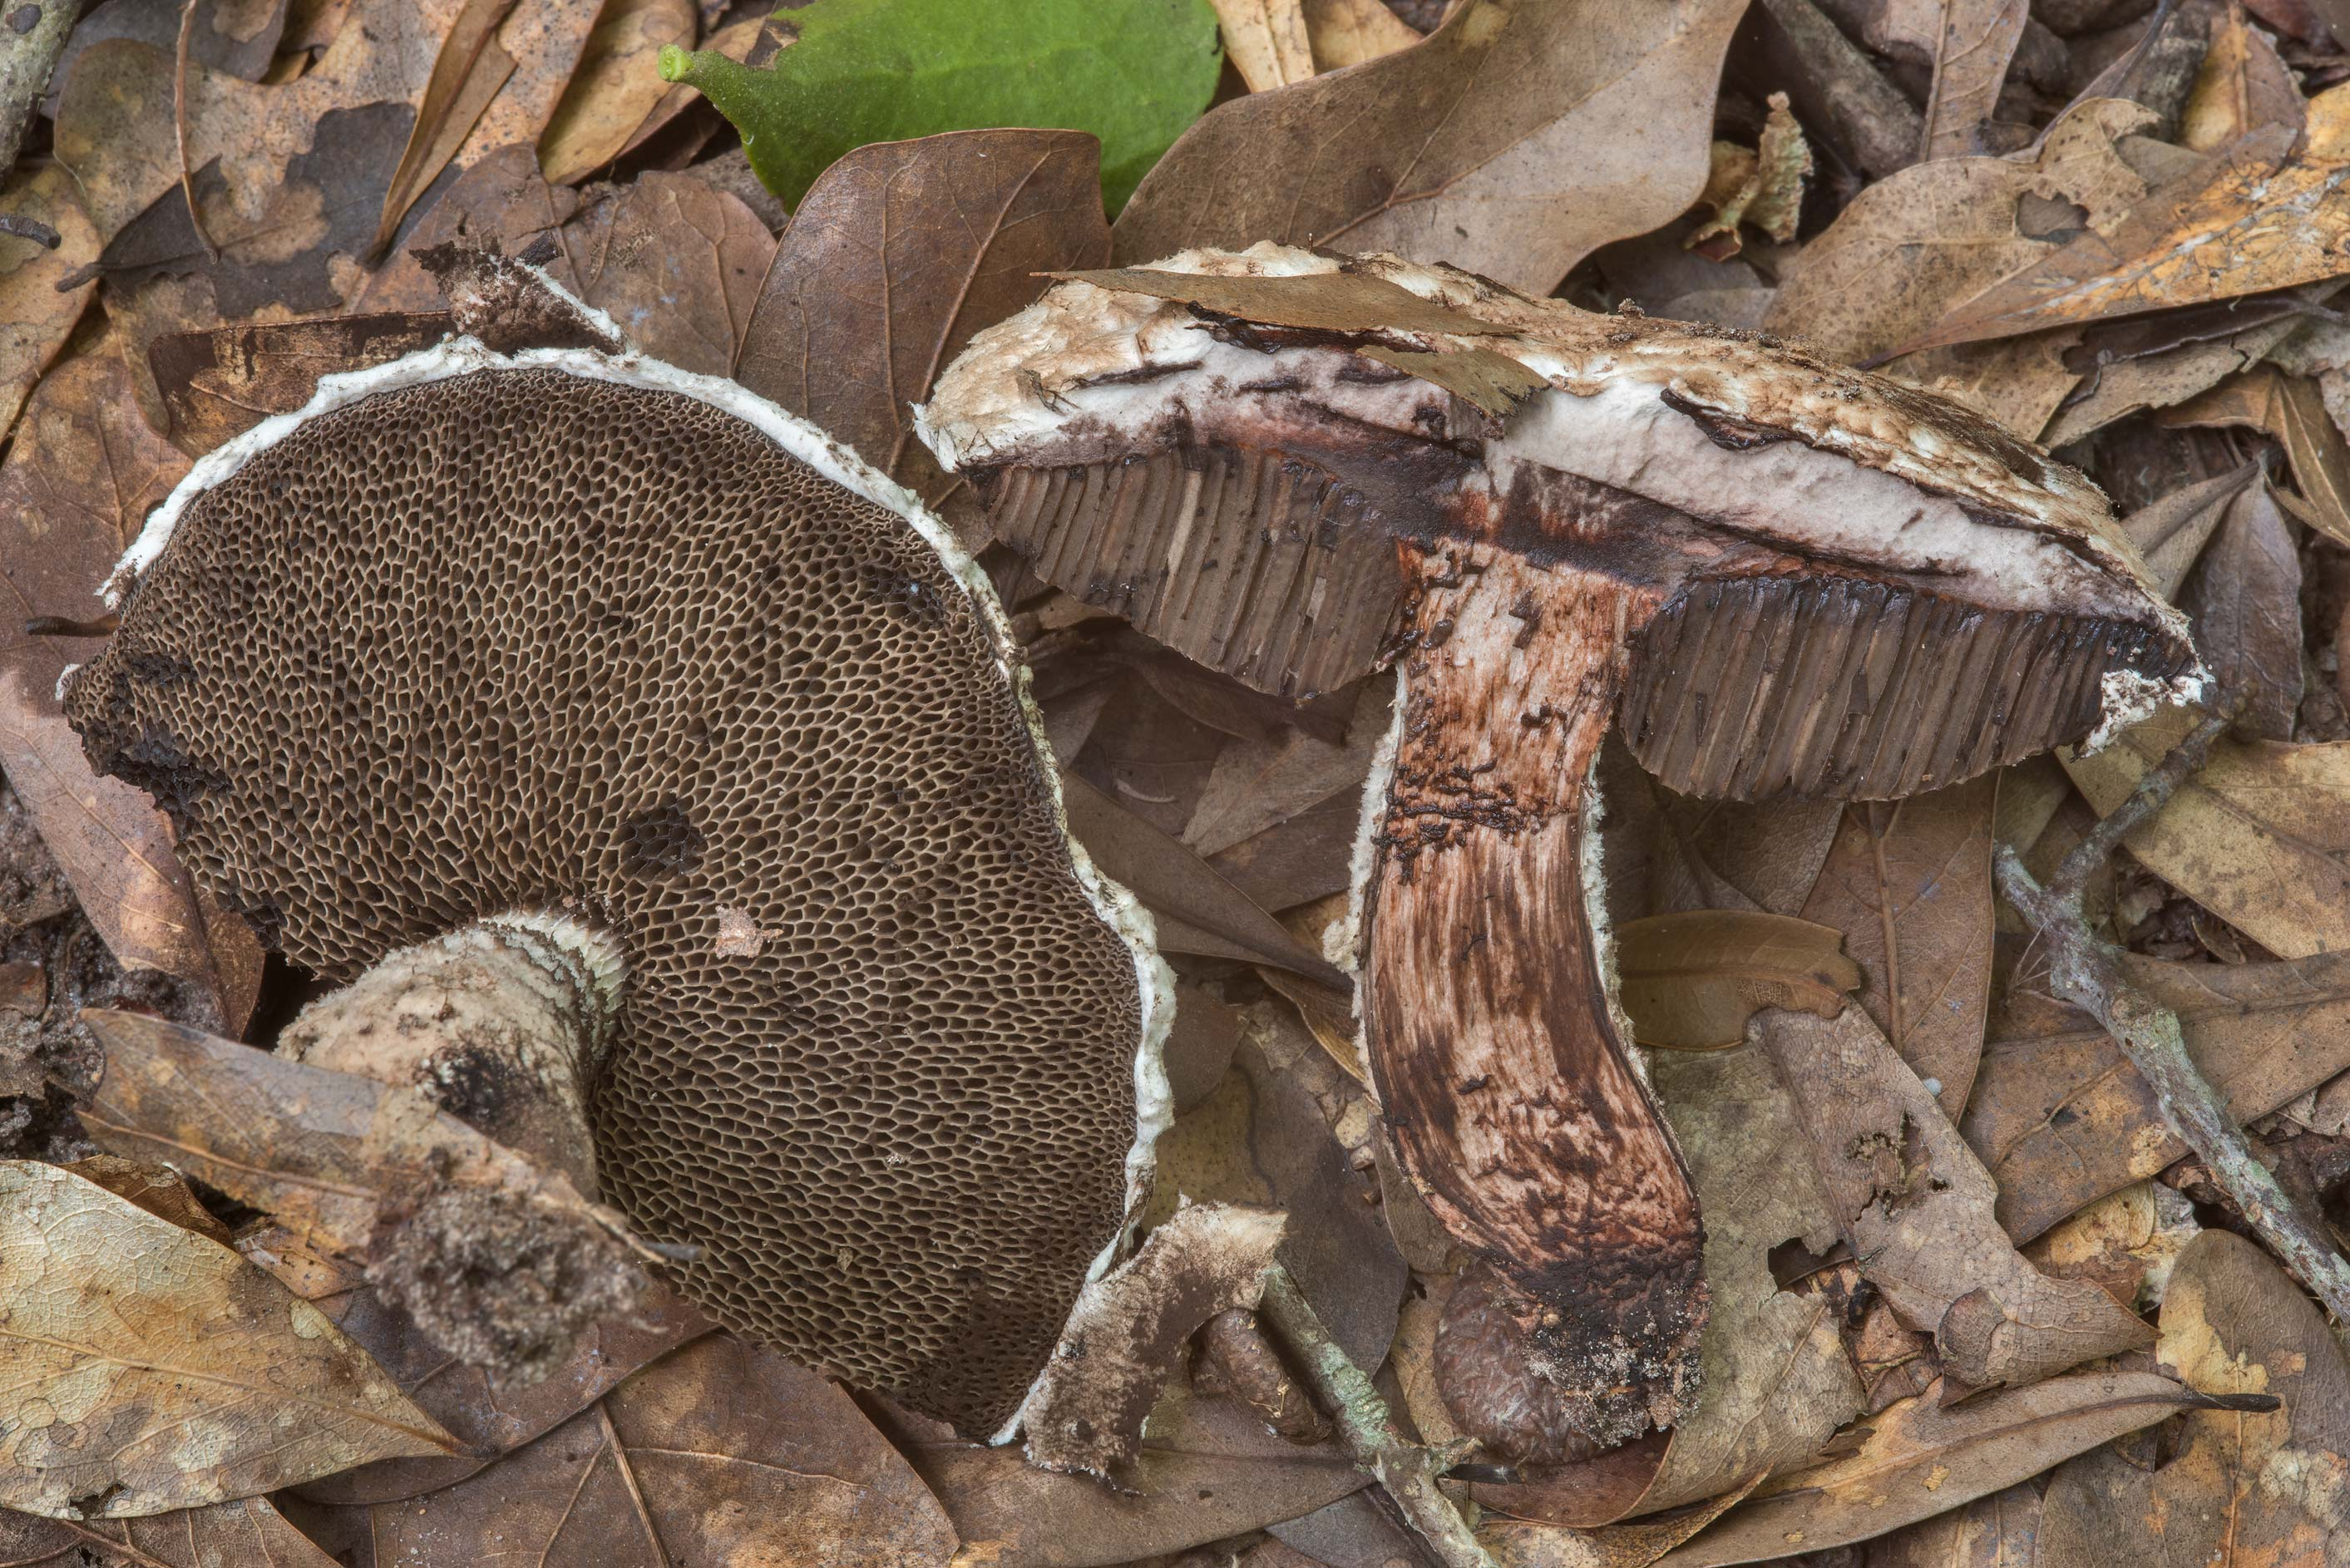 Dissected scaly bolete mushroom Strobilomyces...Creek Park. College Station, Texas